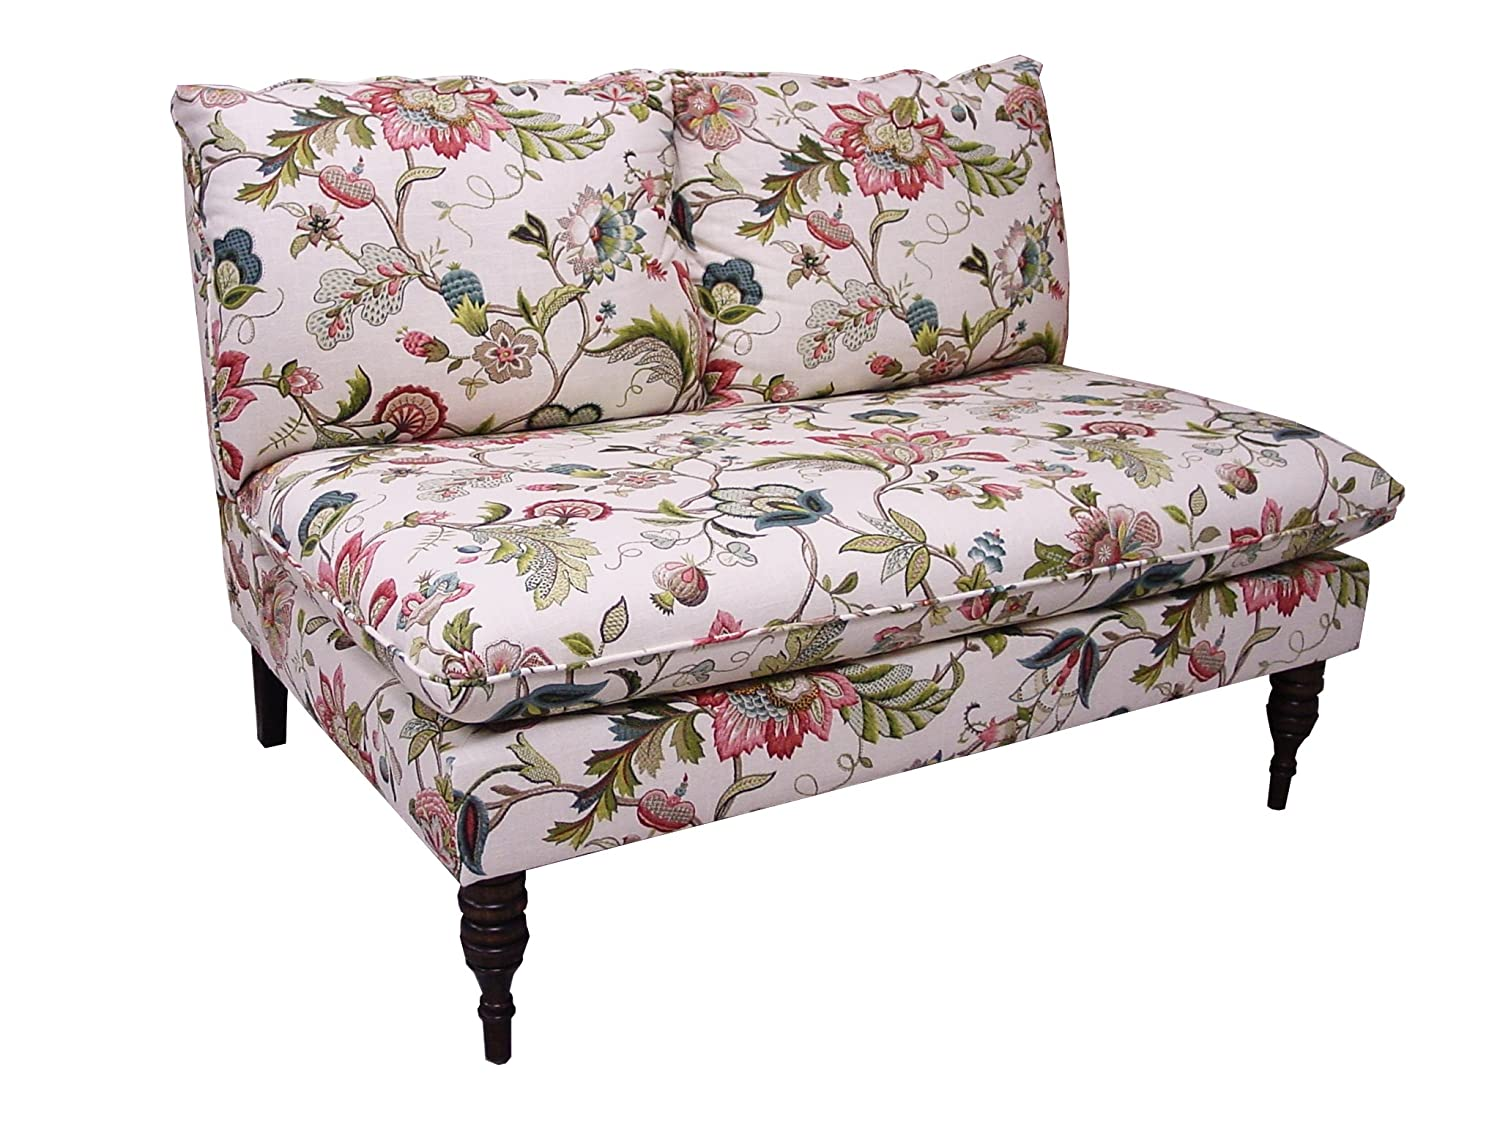 Superior Amazon.com: Skyline Furniture Armless Settee In Brissac Jewel: Kitchen U0026  Dining